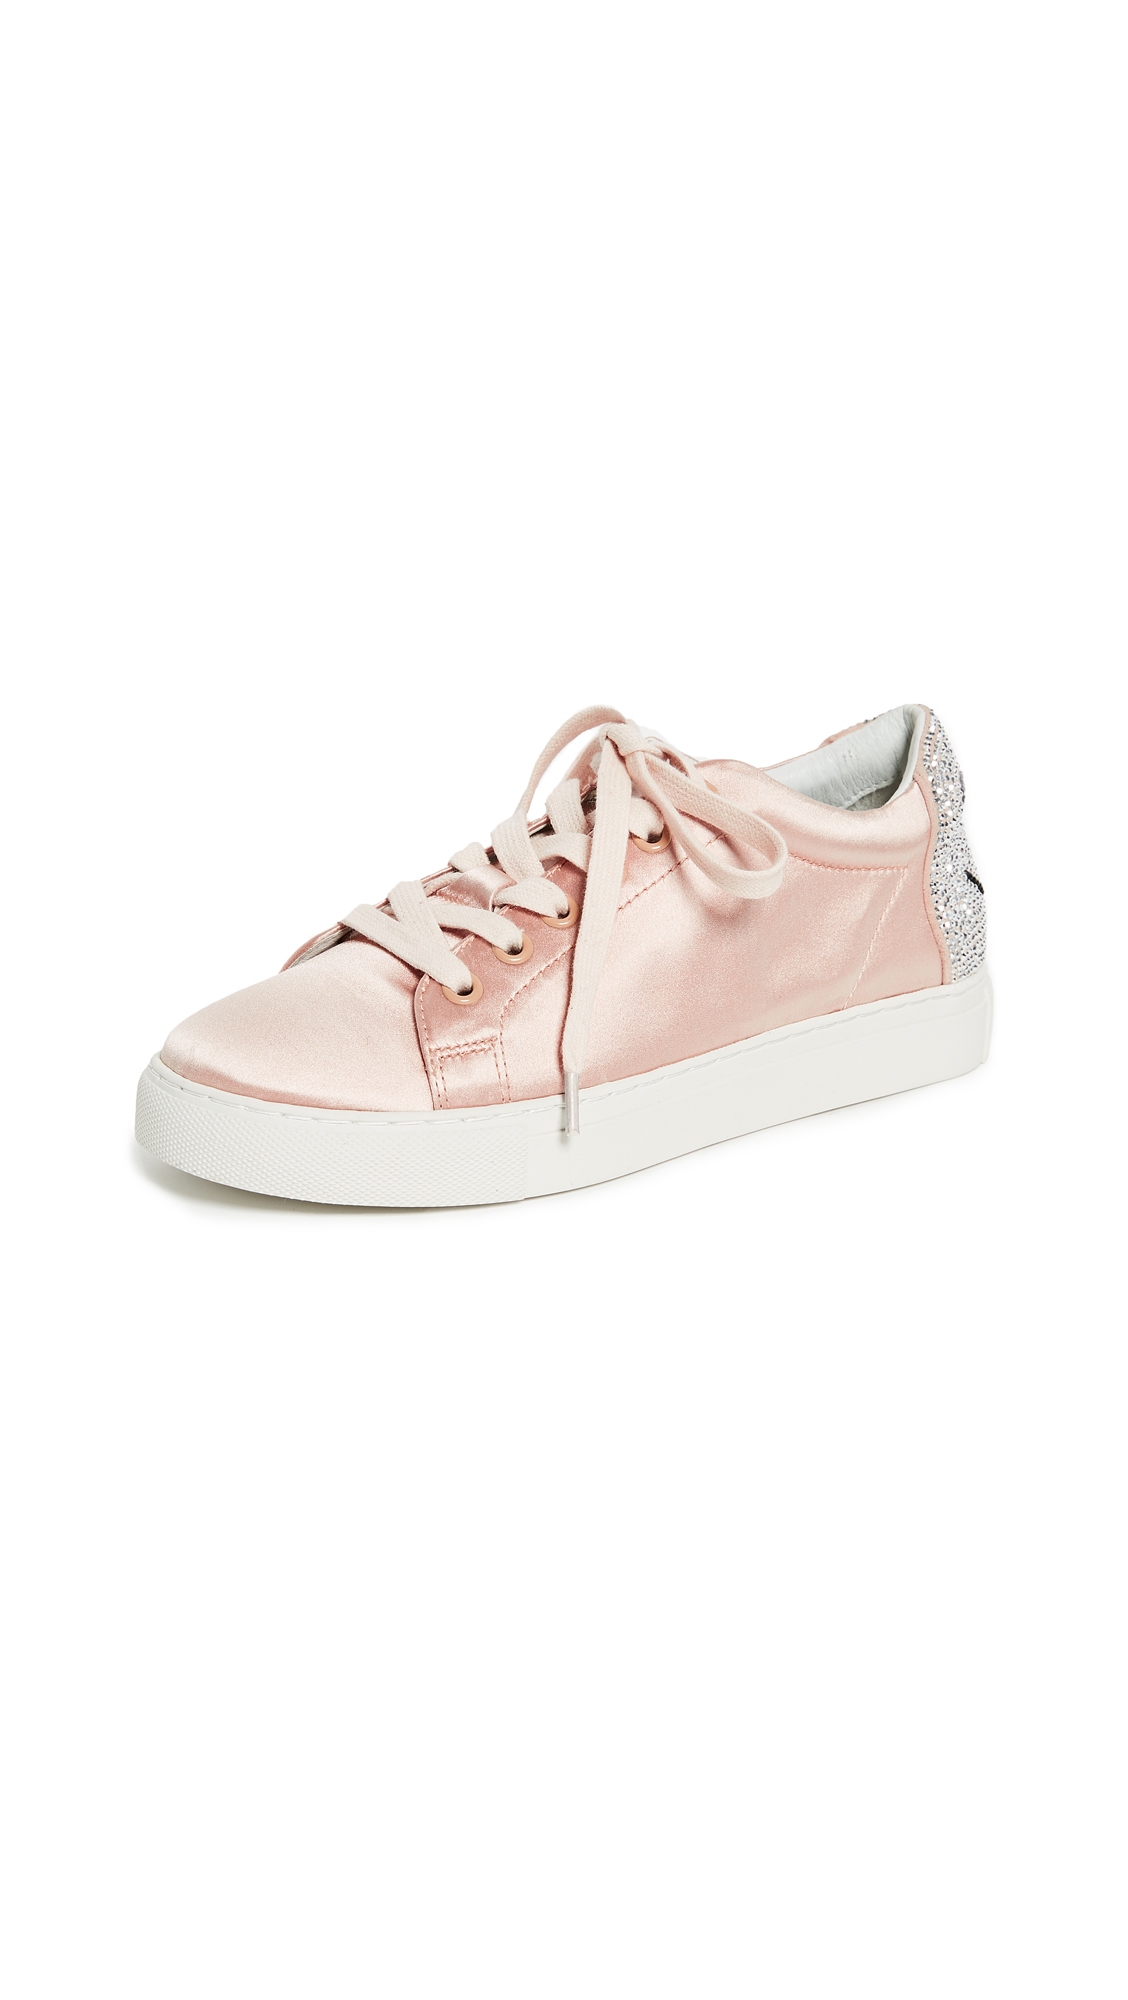 ONE by Wink Sneakers - Nude